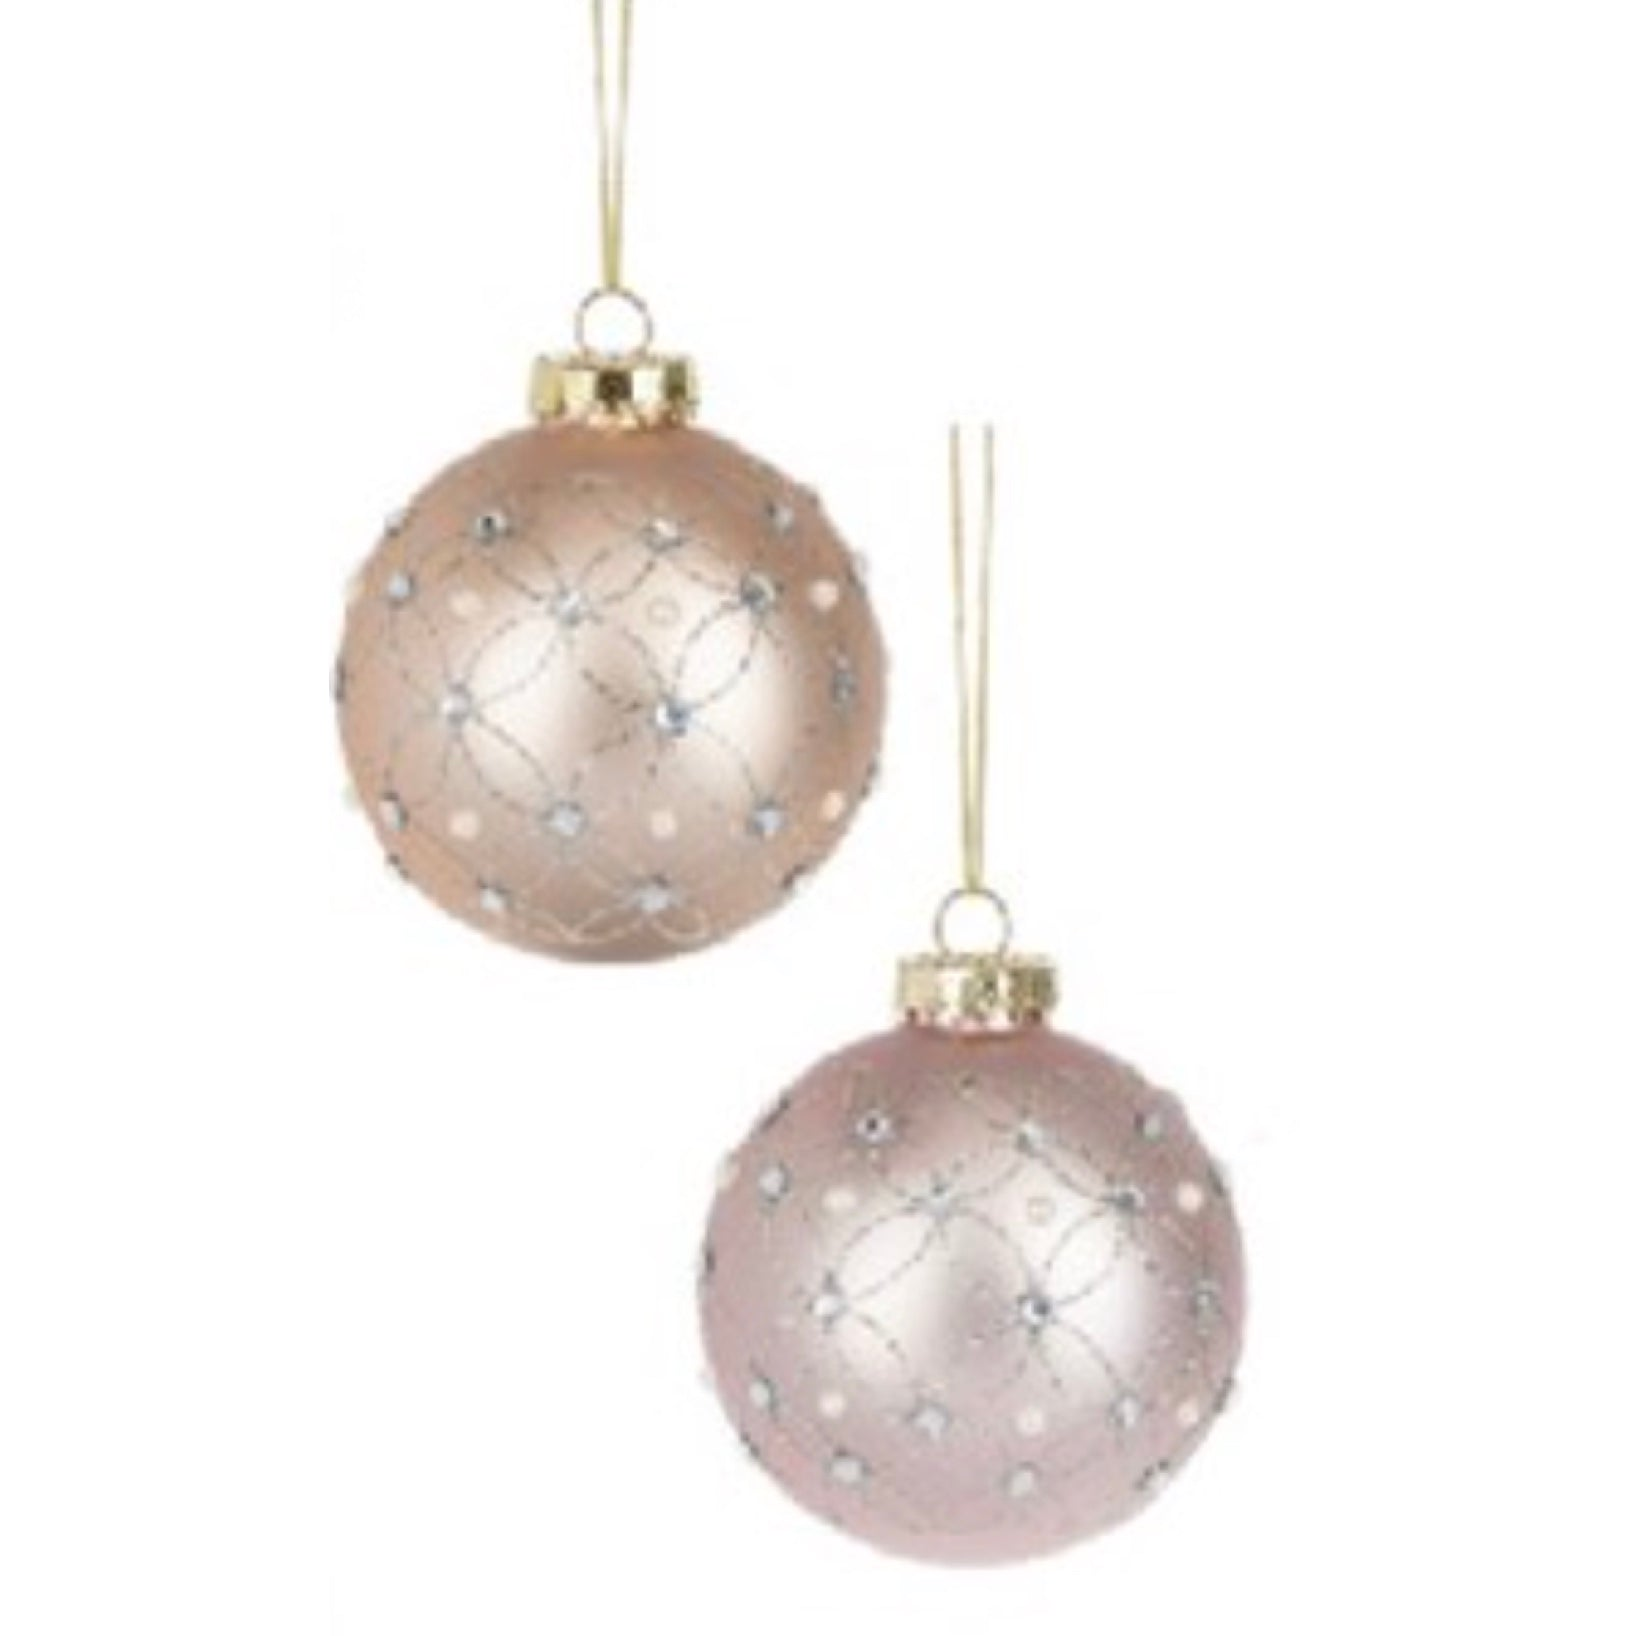 Blush Pink Glass Ball Ornament with Crystals & Pearls